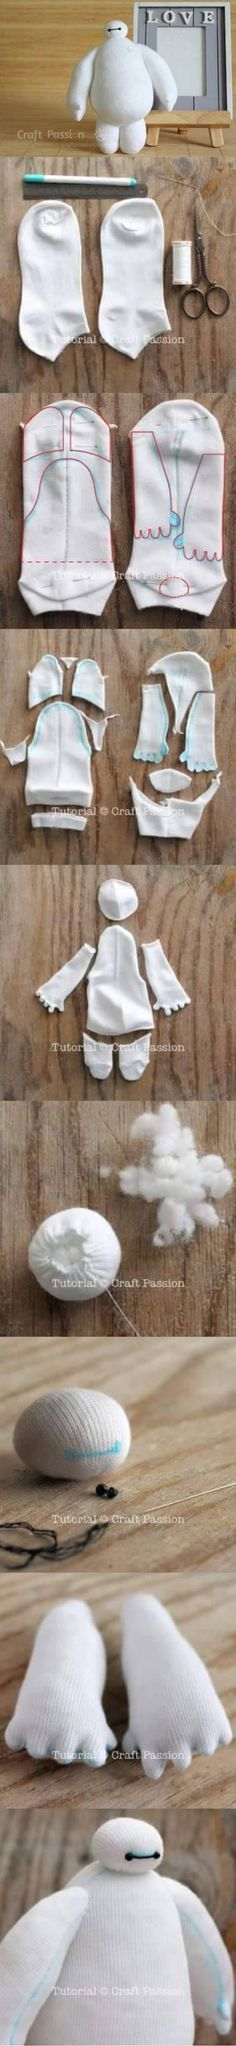 For those who are fans of Baymax and want to make them. Here, DIY Baymax from socks Sock Crafts, Cute Crafts, Crafts To Do, Sewing Crafts, Sewing Projects, Crafts For Kids, Craft Projects, Arts And Crafts, Paper Crafts